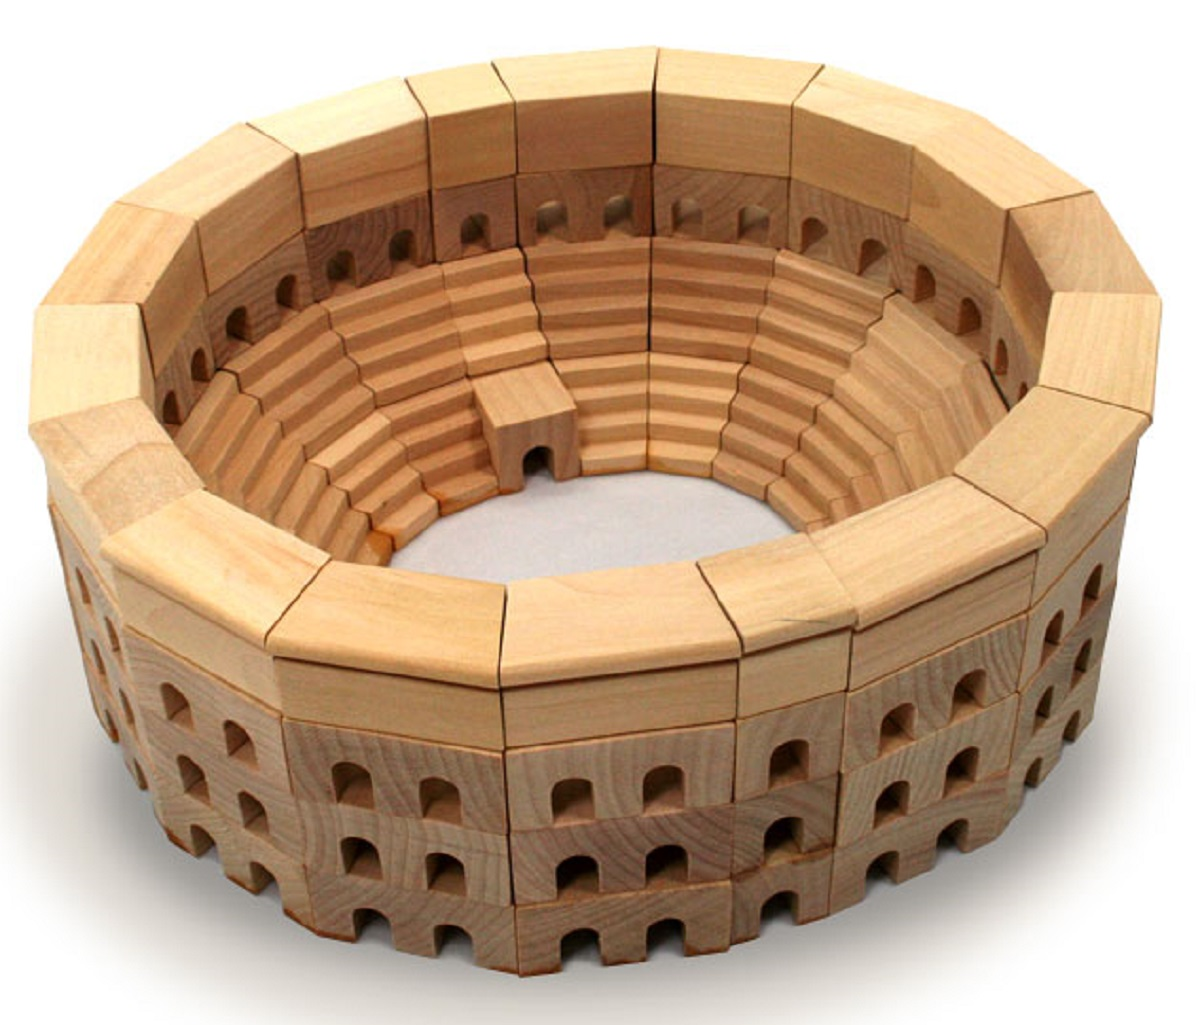 Haba Coliseum Building Blocks